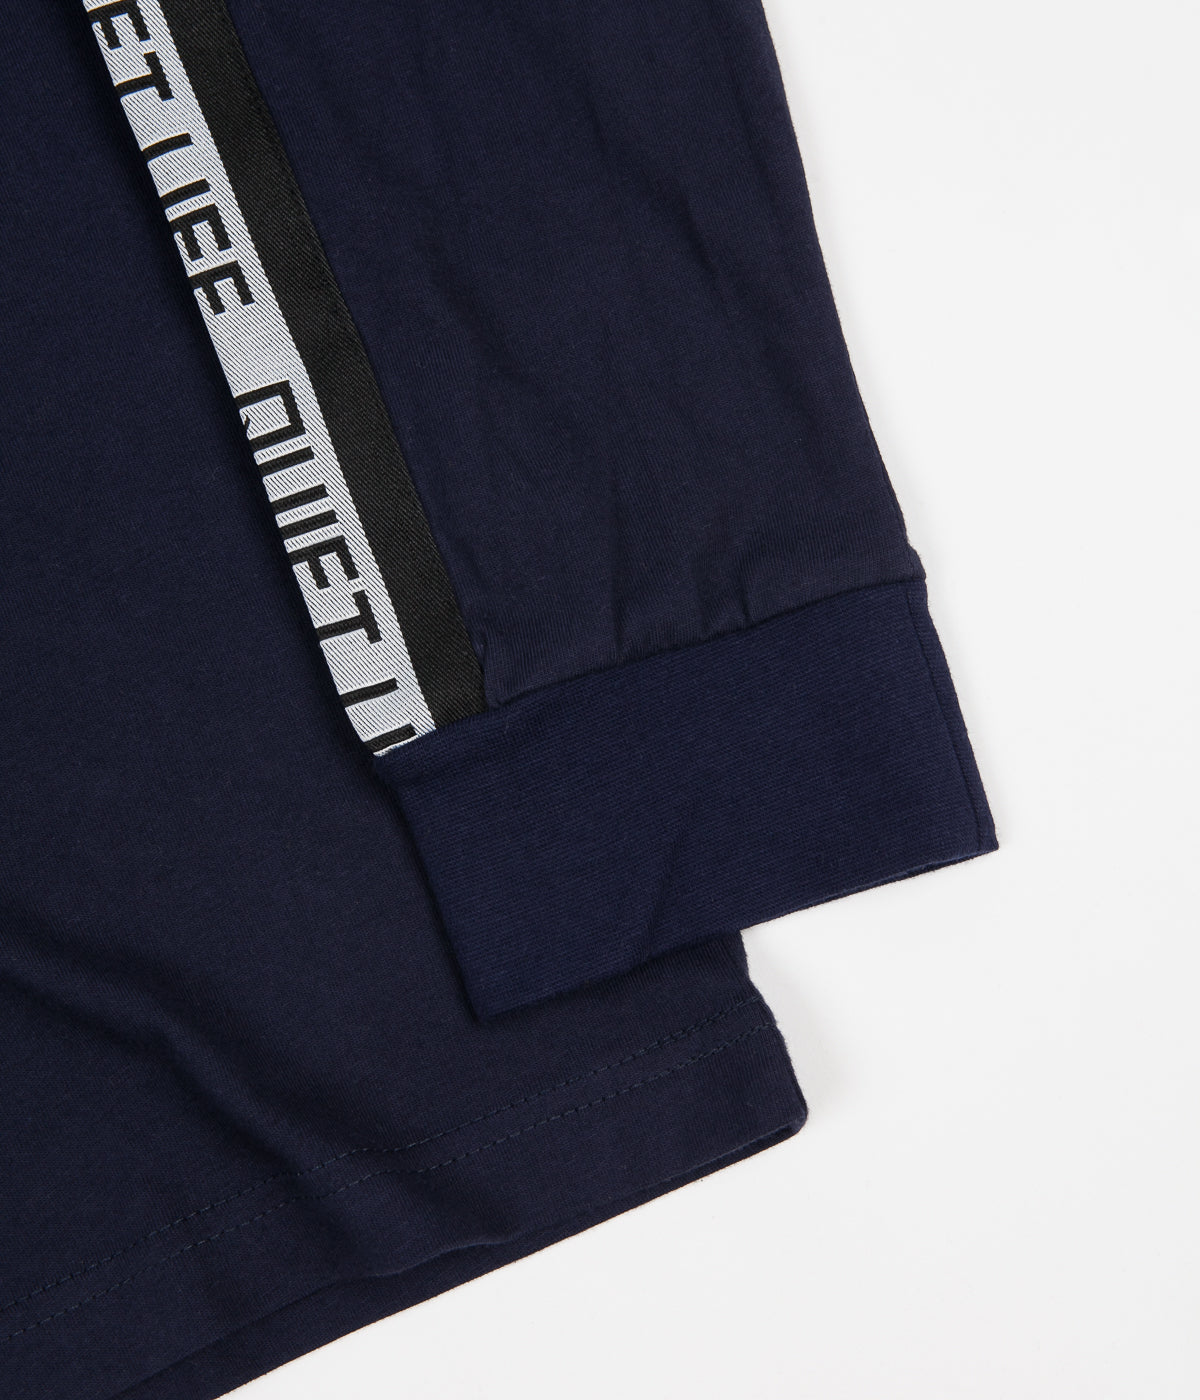 The Quiet Life Racing Stripe Long Sleeve T-Shirt - Navy